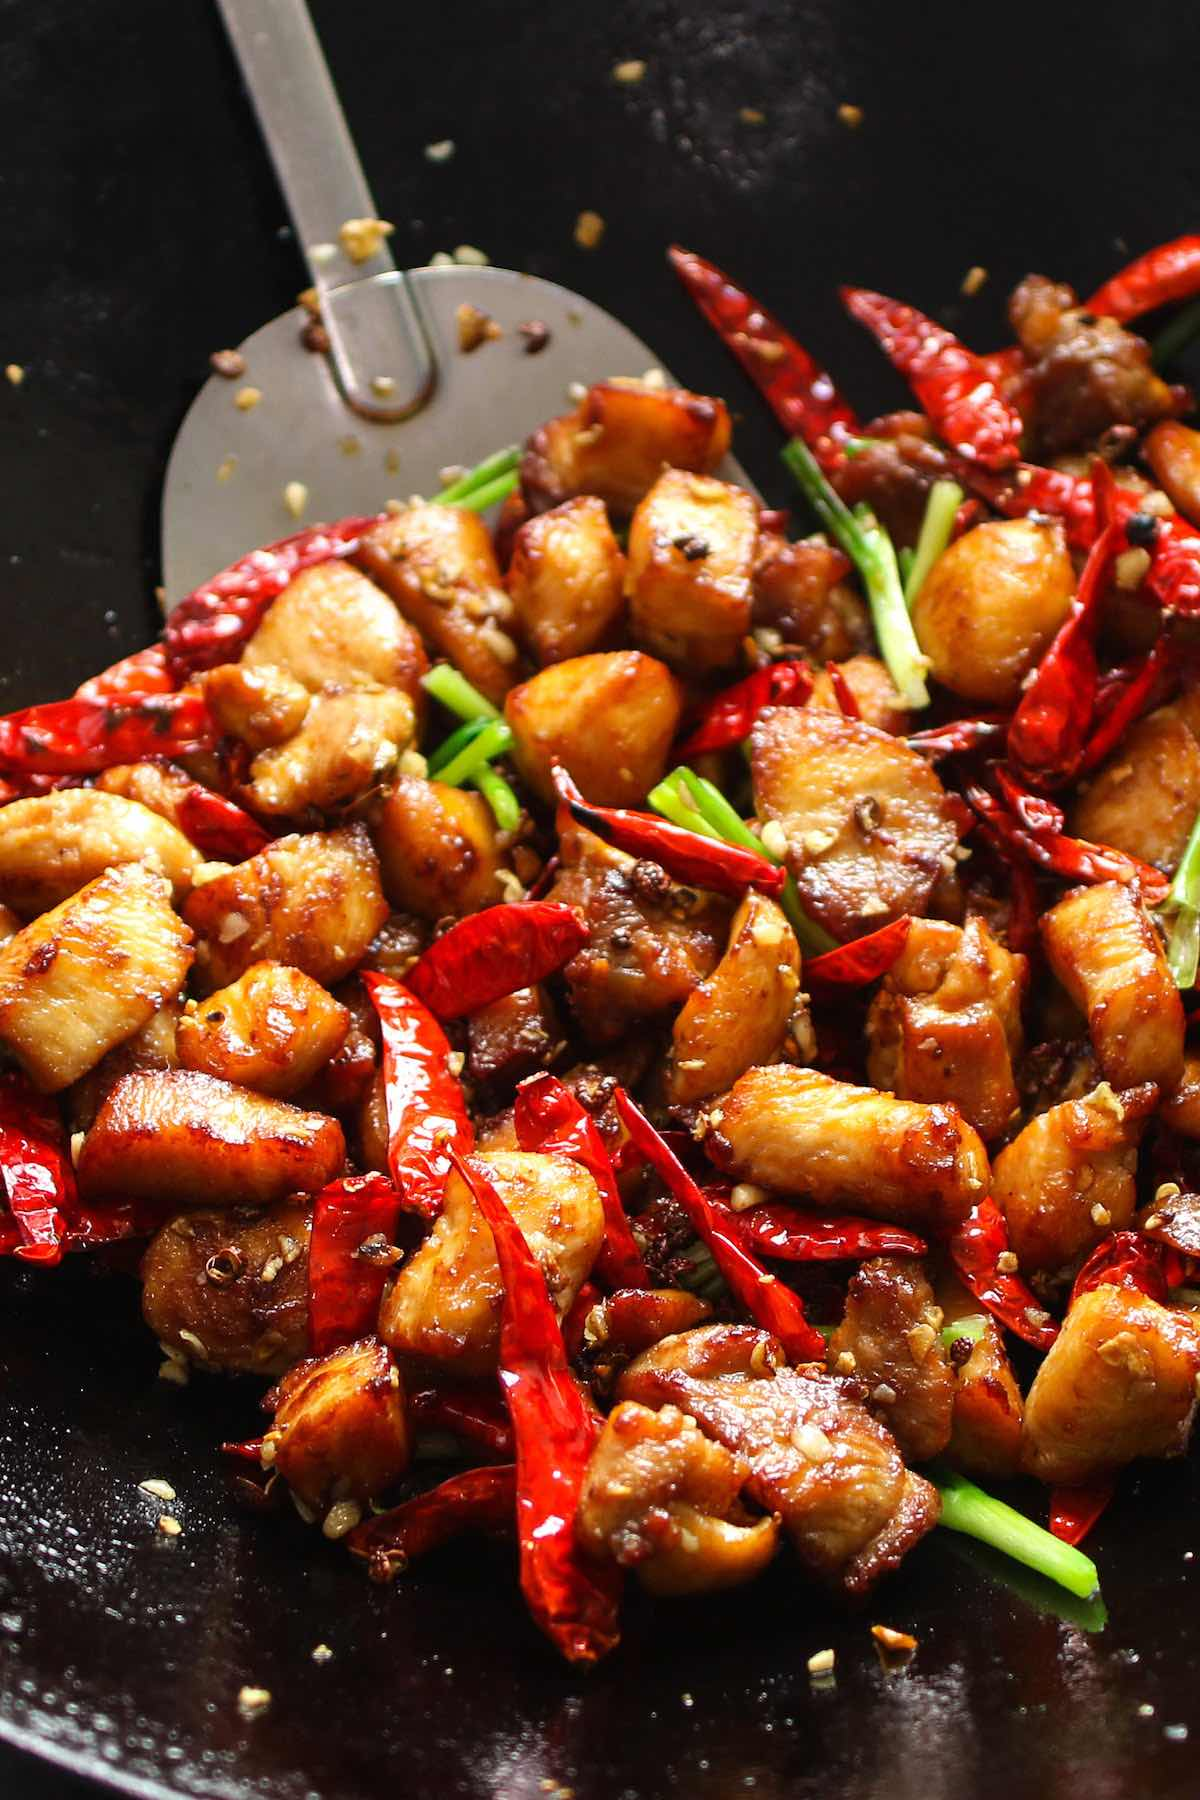 This Szechuan Chicken is an easy Chinese dish with the perfect combination of spicy, salty and sweet flavors. This Szechuan style chicken recipe tastes like your favorite Chinese takeout and is ready in less time. The best part, you can control the spiciness to make it mild or EXTRA HOT!